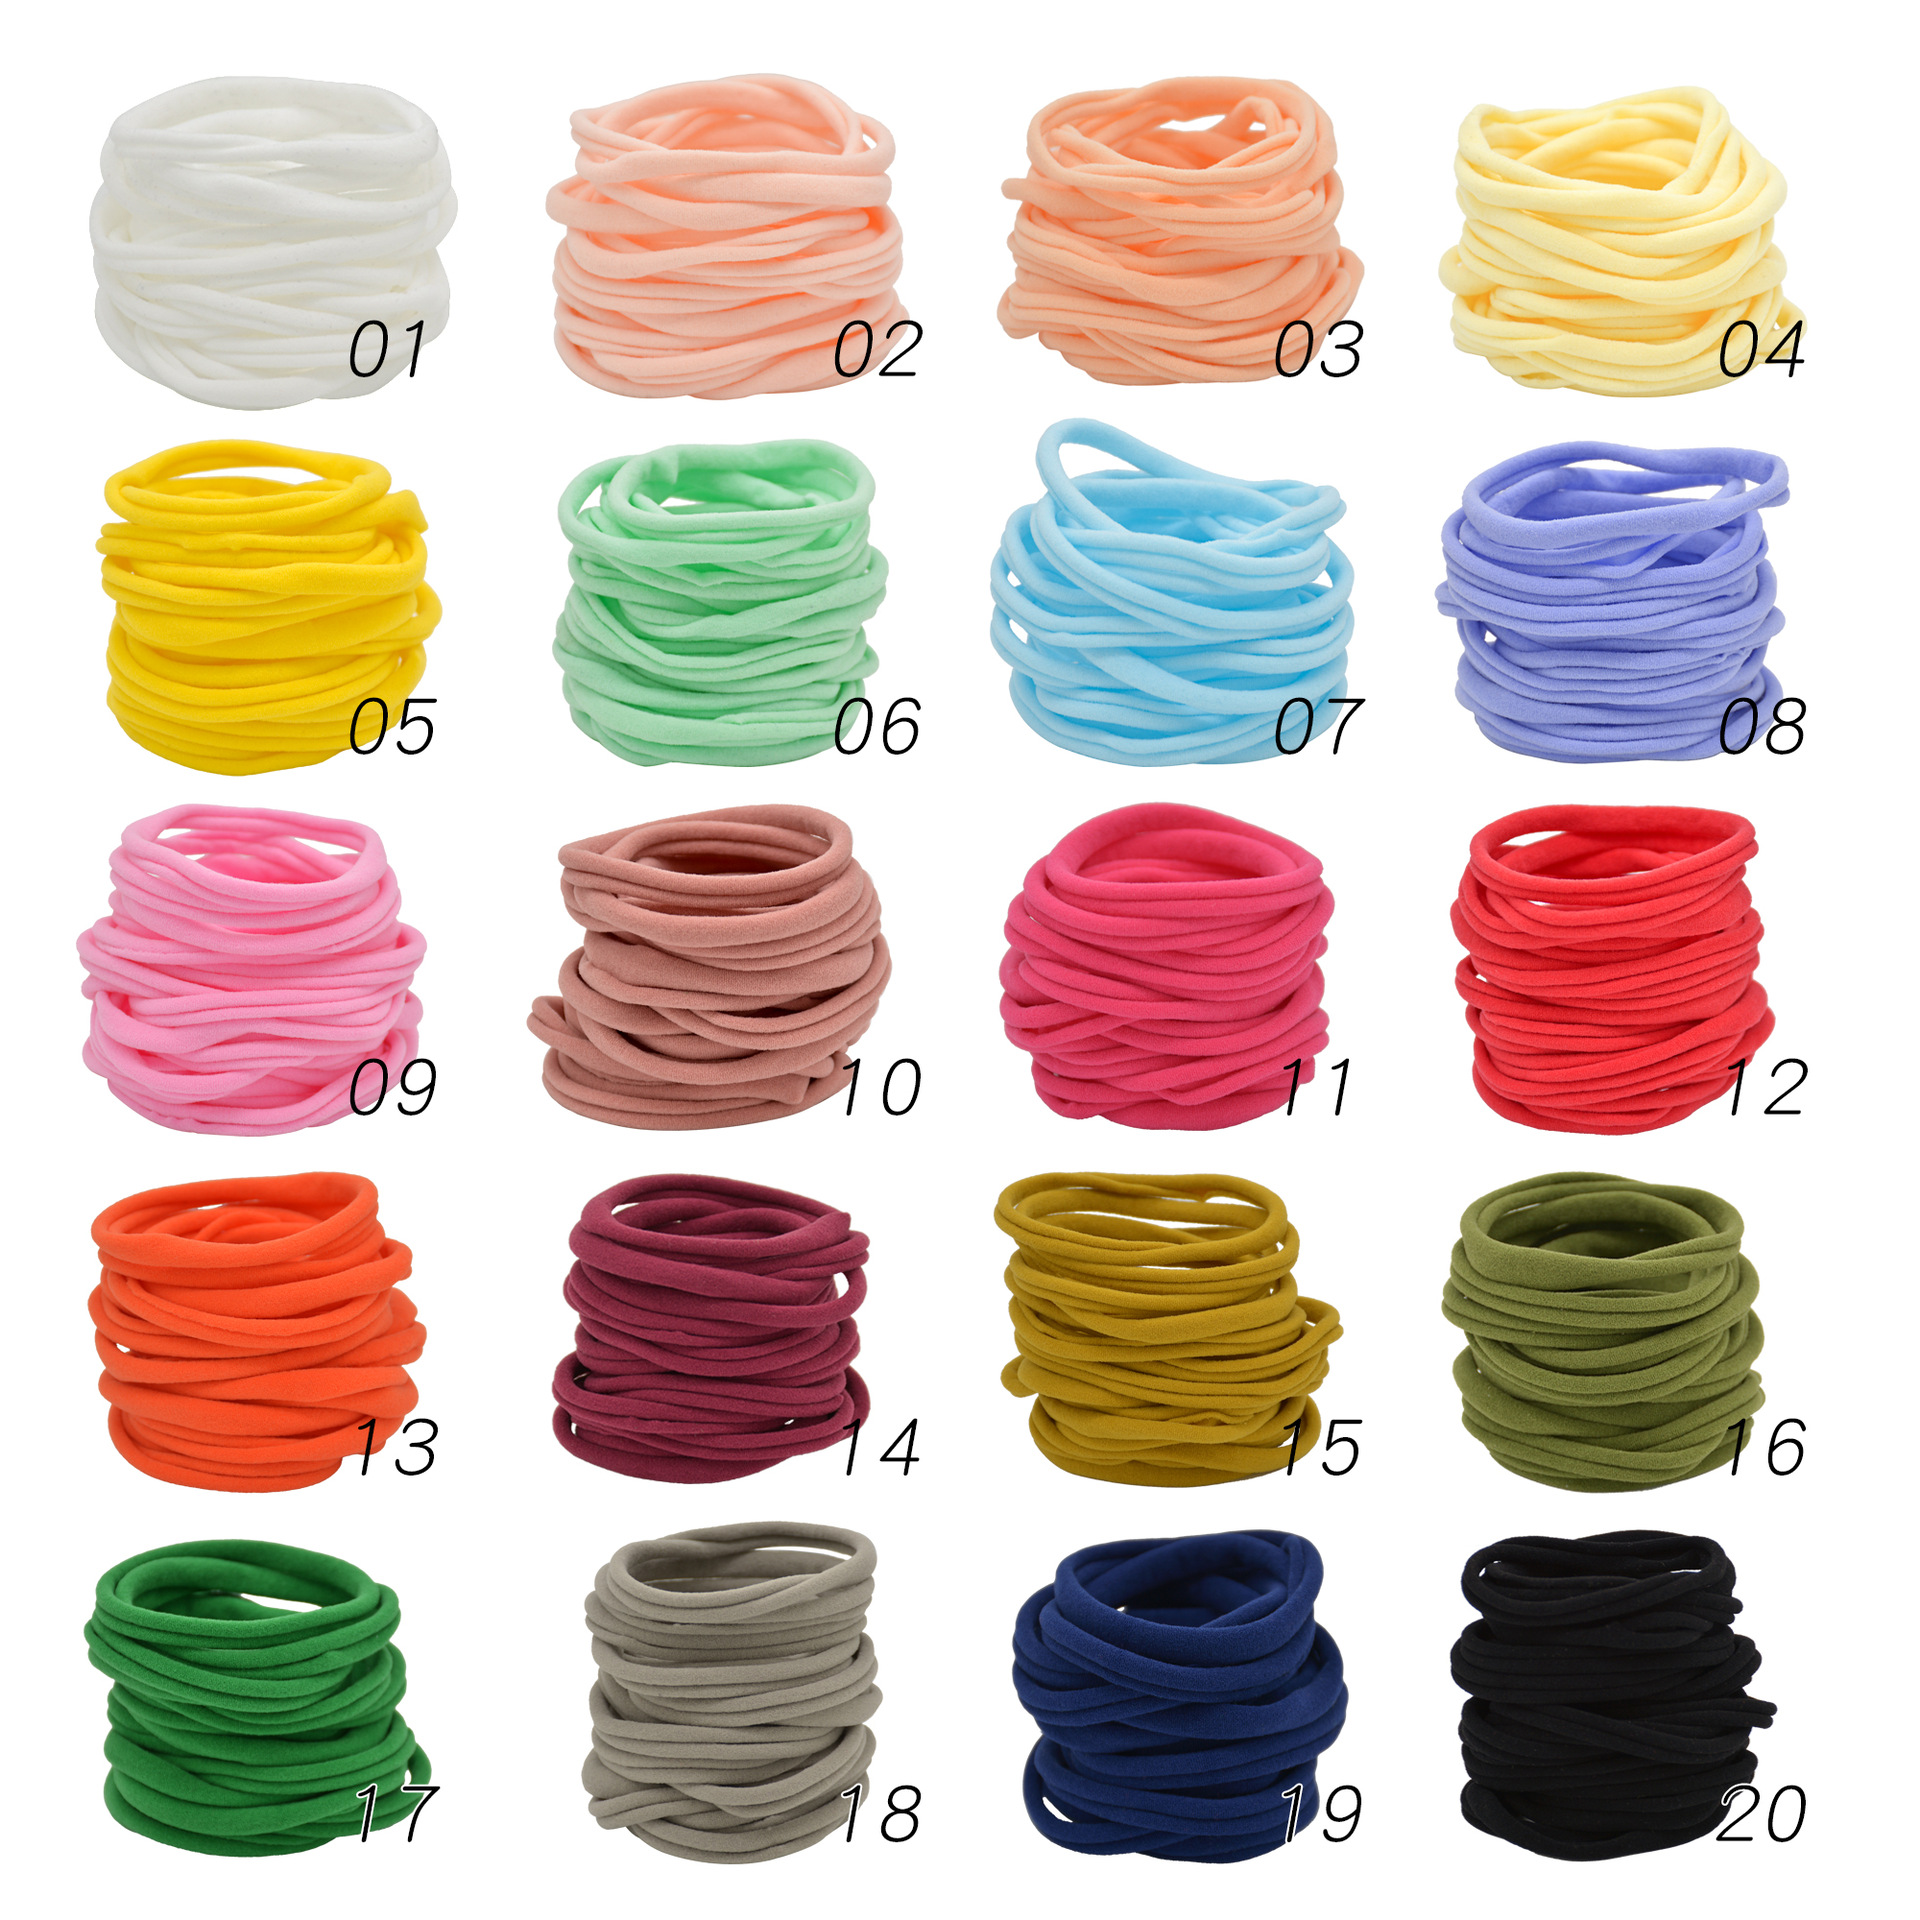 12pcs Nylon Elastic Seamless Hair Band Headband Soft DIY Headwear Baby Girl Boy Headbands Nude Hairbands Children Hair Circle